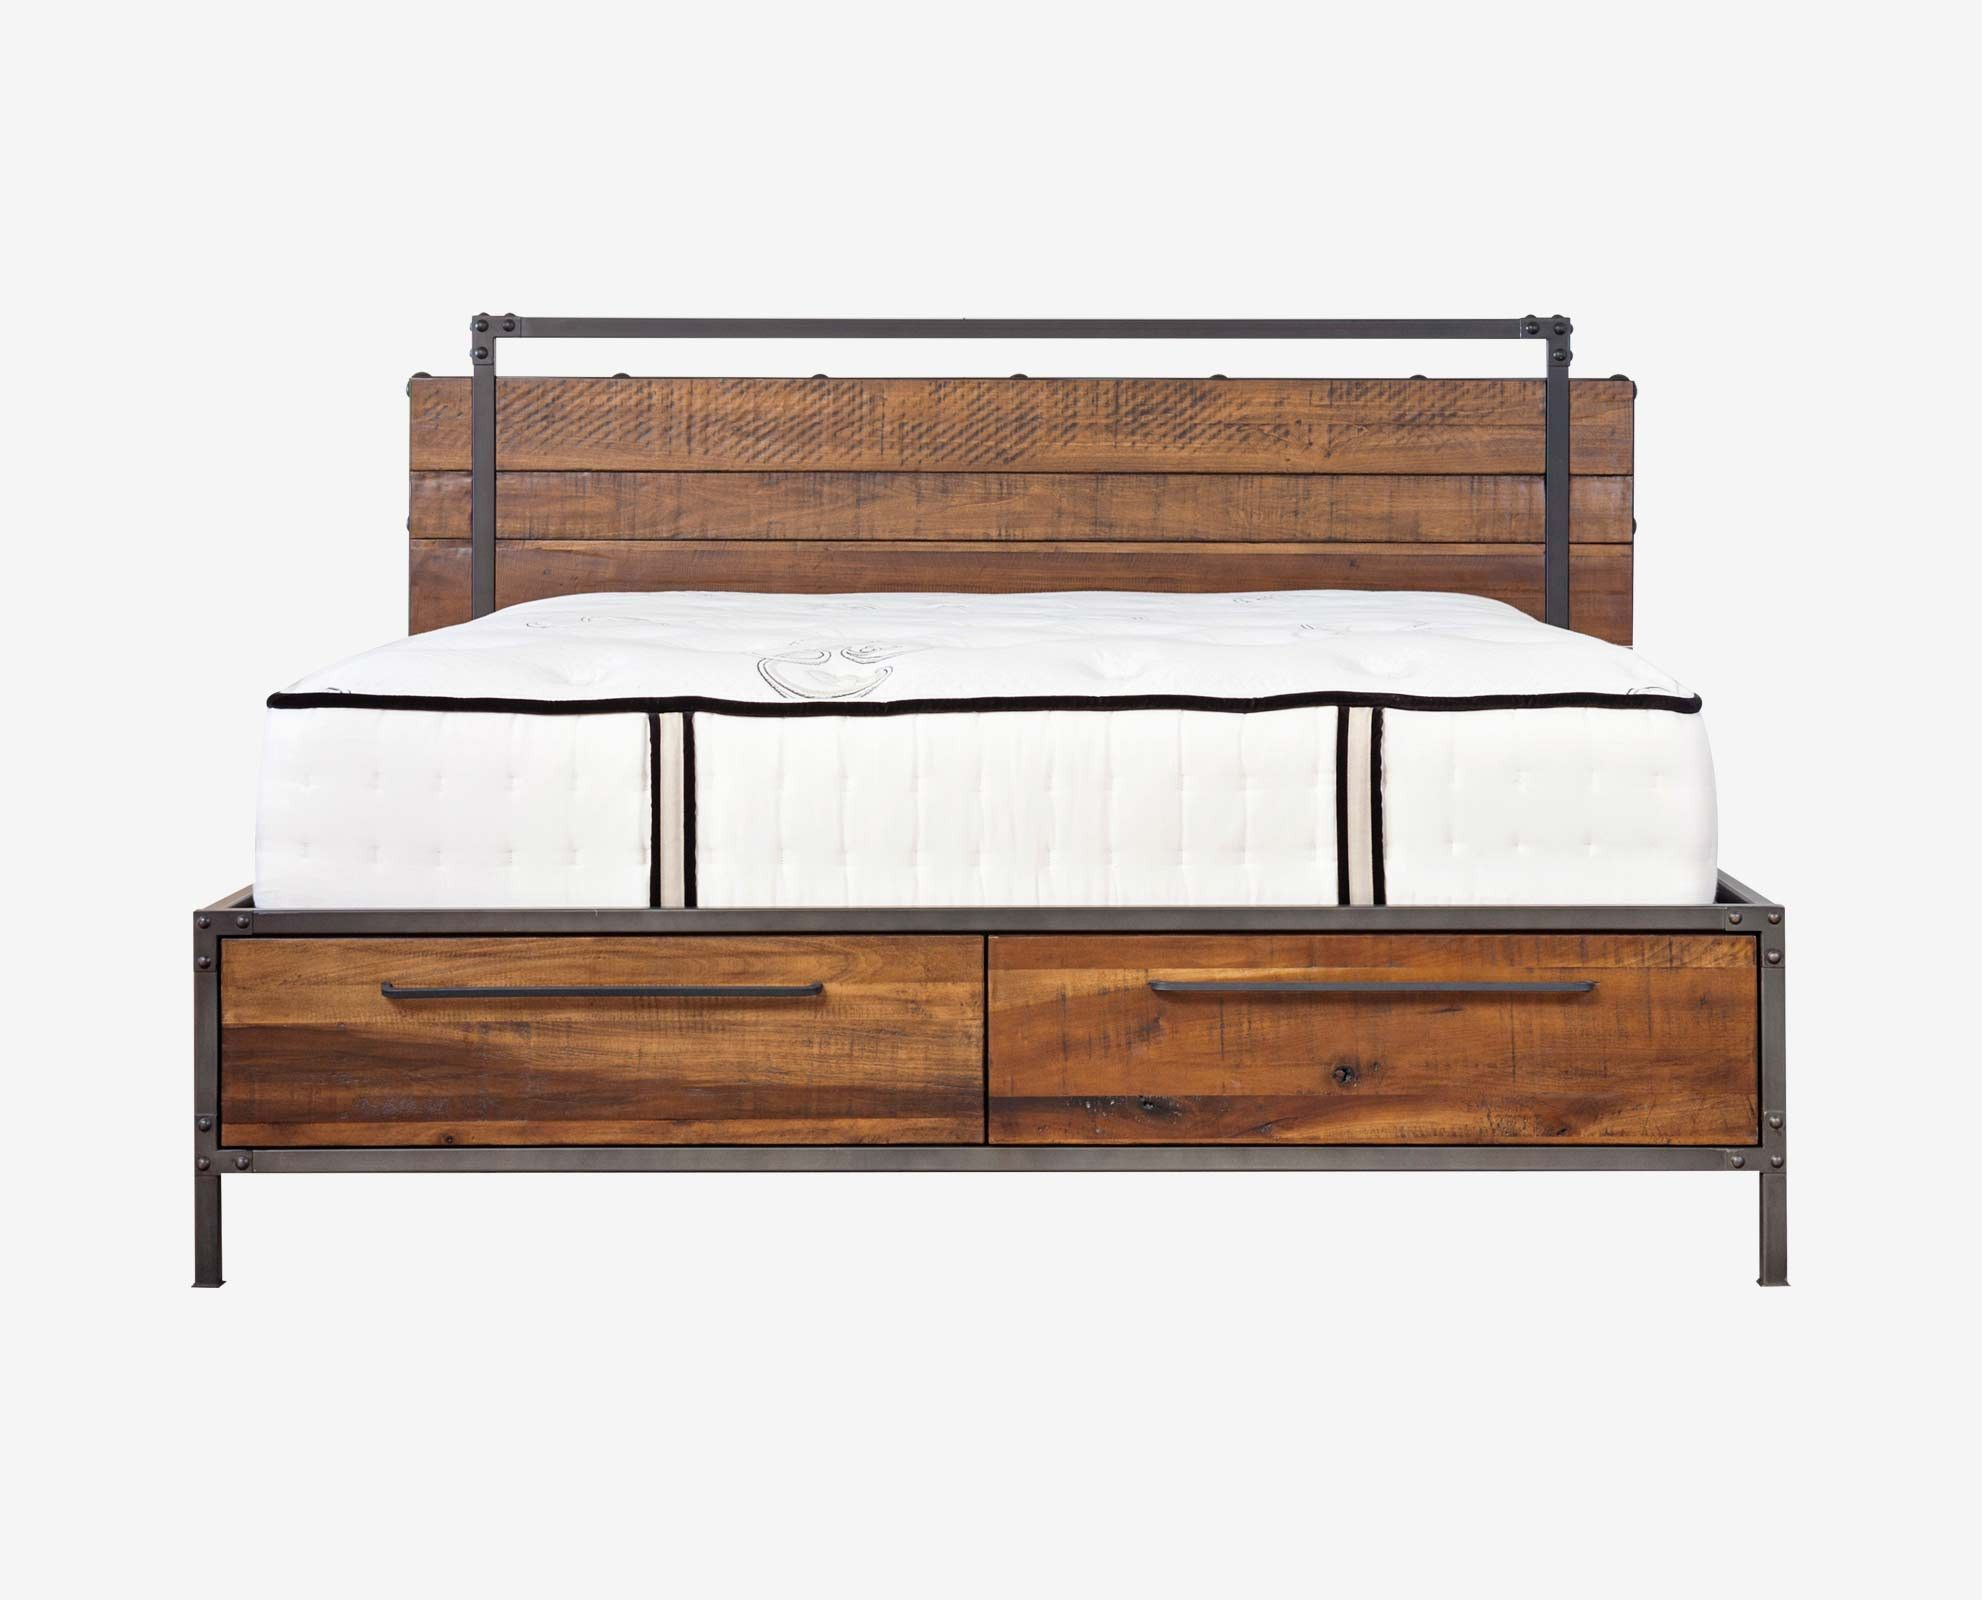 Insigna Storage Bed Bed frame with storage, Bed